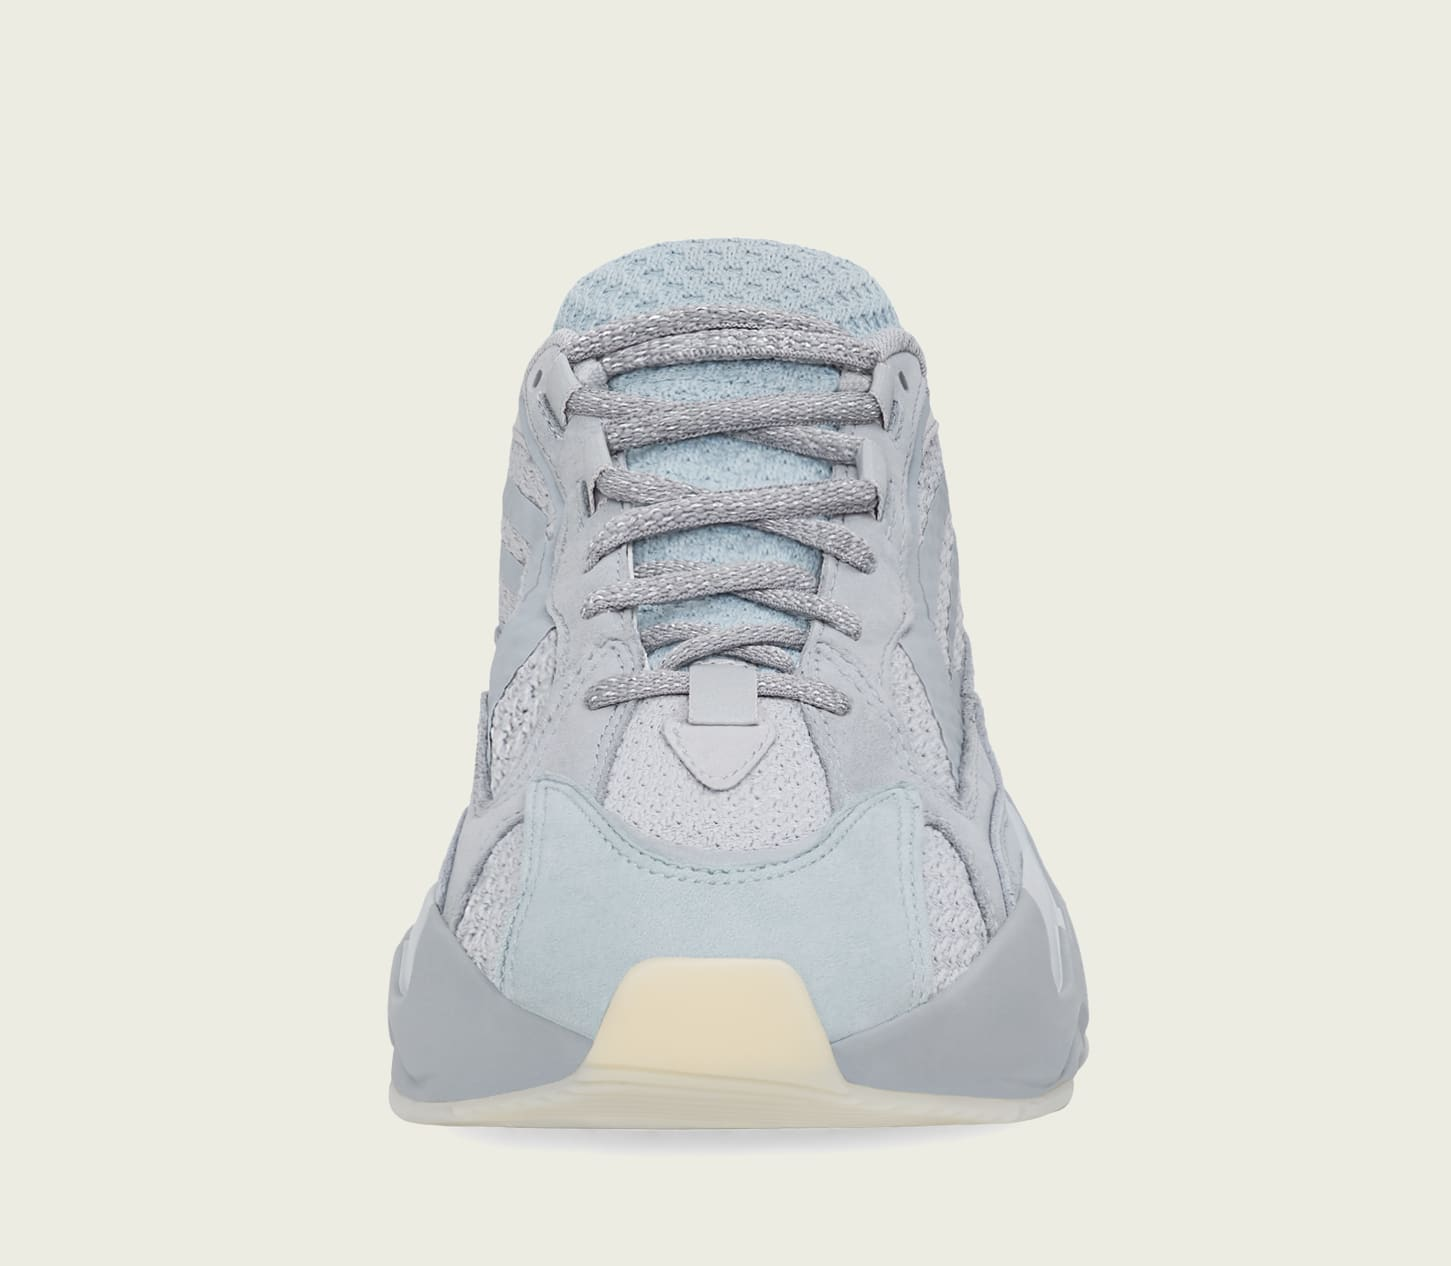 the latest 193ce 598bb Adidas Yeezy Boost 700 V2